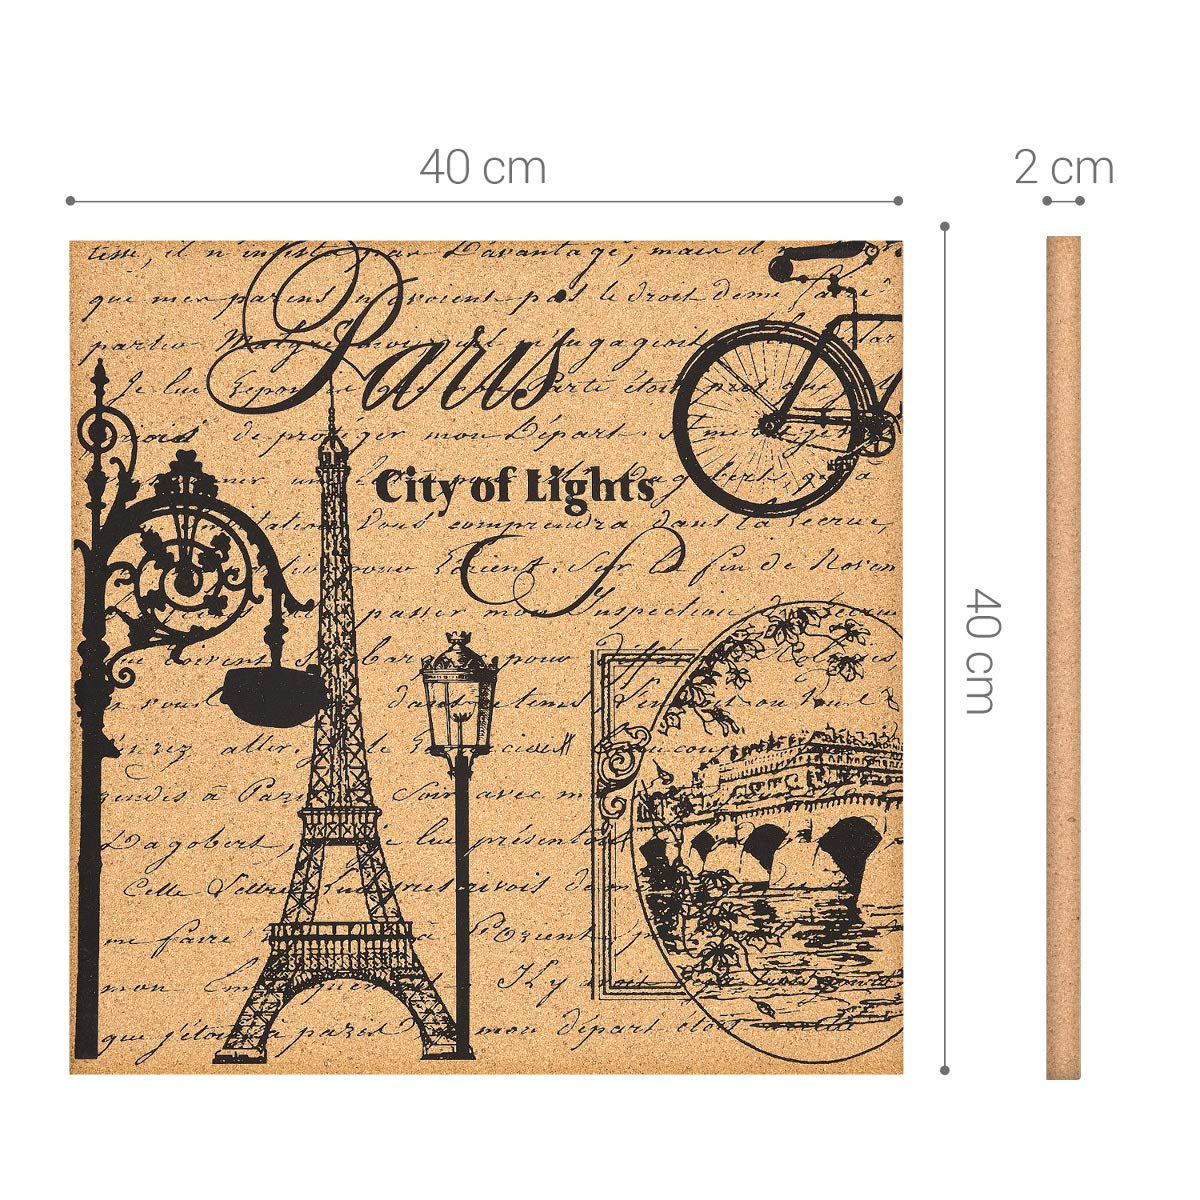 Navaris Cork Bulletin Board - 40 x 40 cm Push Pin Memo Corkboard in Eiffel Tower Design with Push Pins for Kitchen, Classroom, Home Office, Bedroom